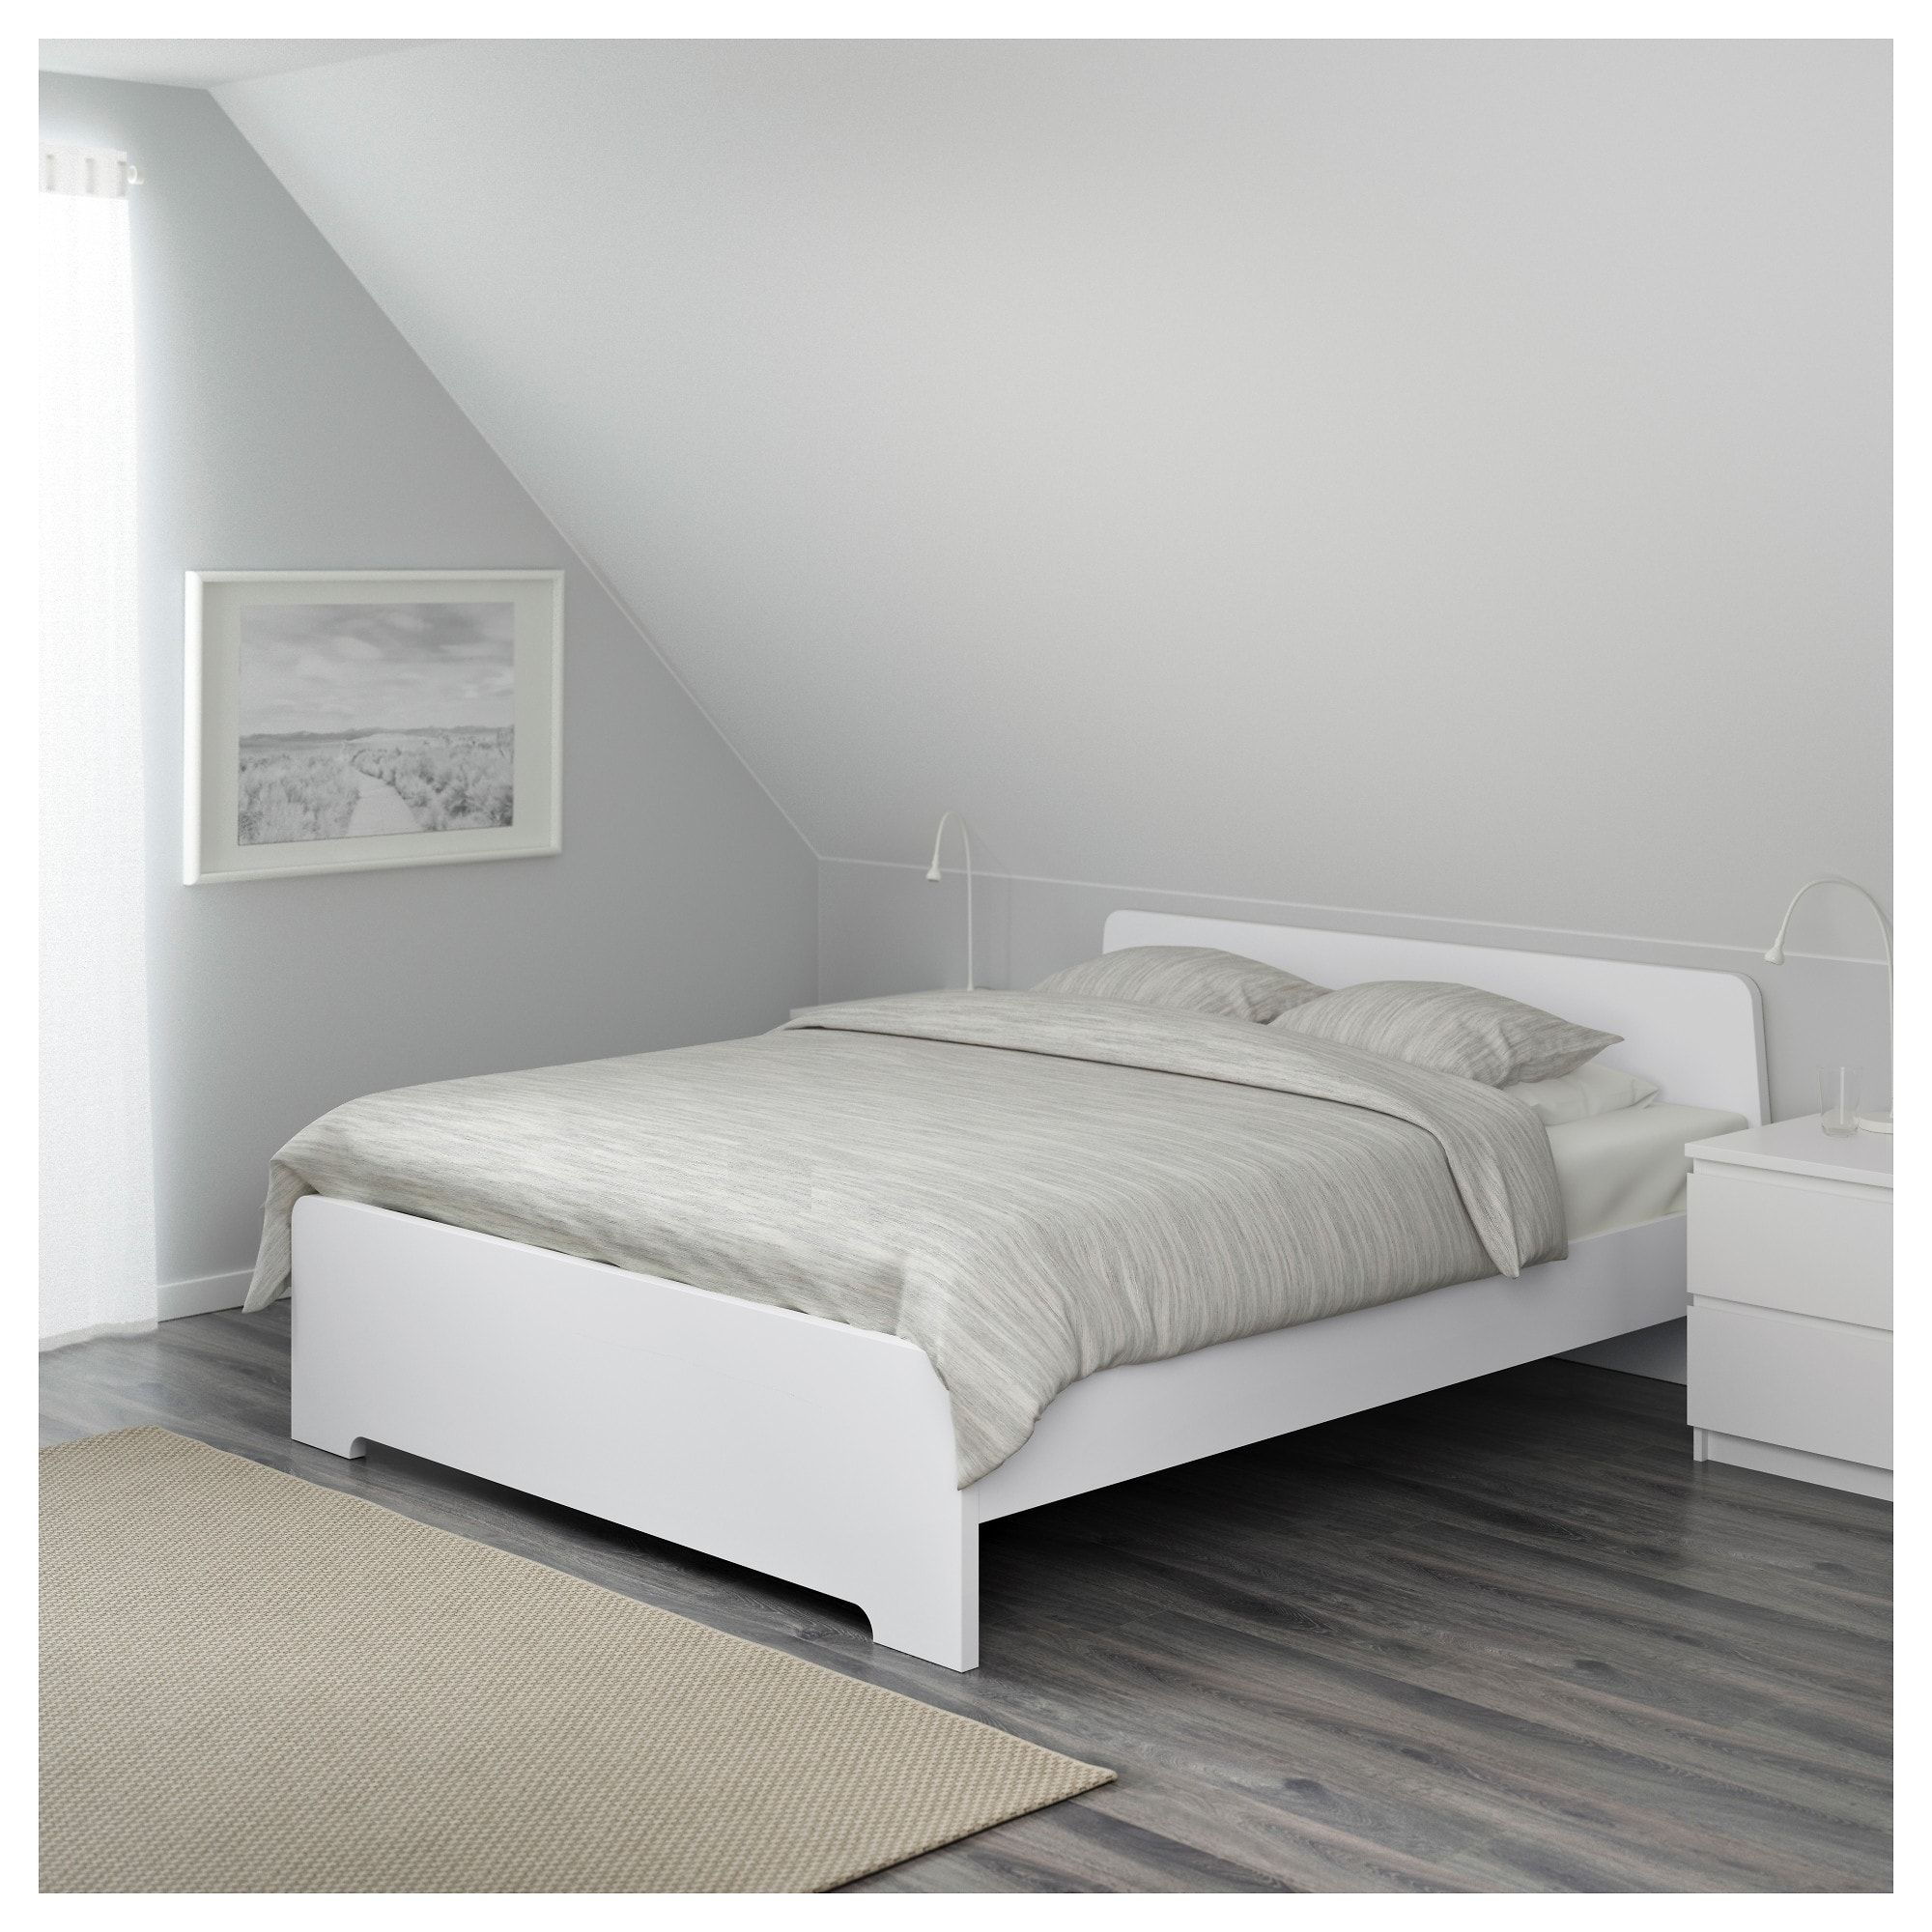 Askvoll Bed Frame White Ikea White Bed Frame Bed Frame With Storage Adjustable Beds